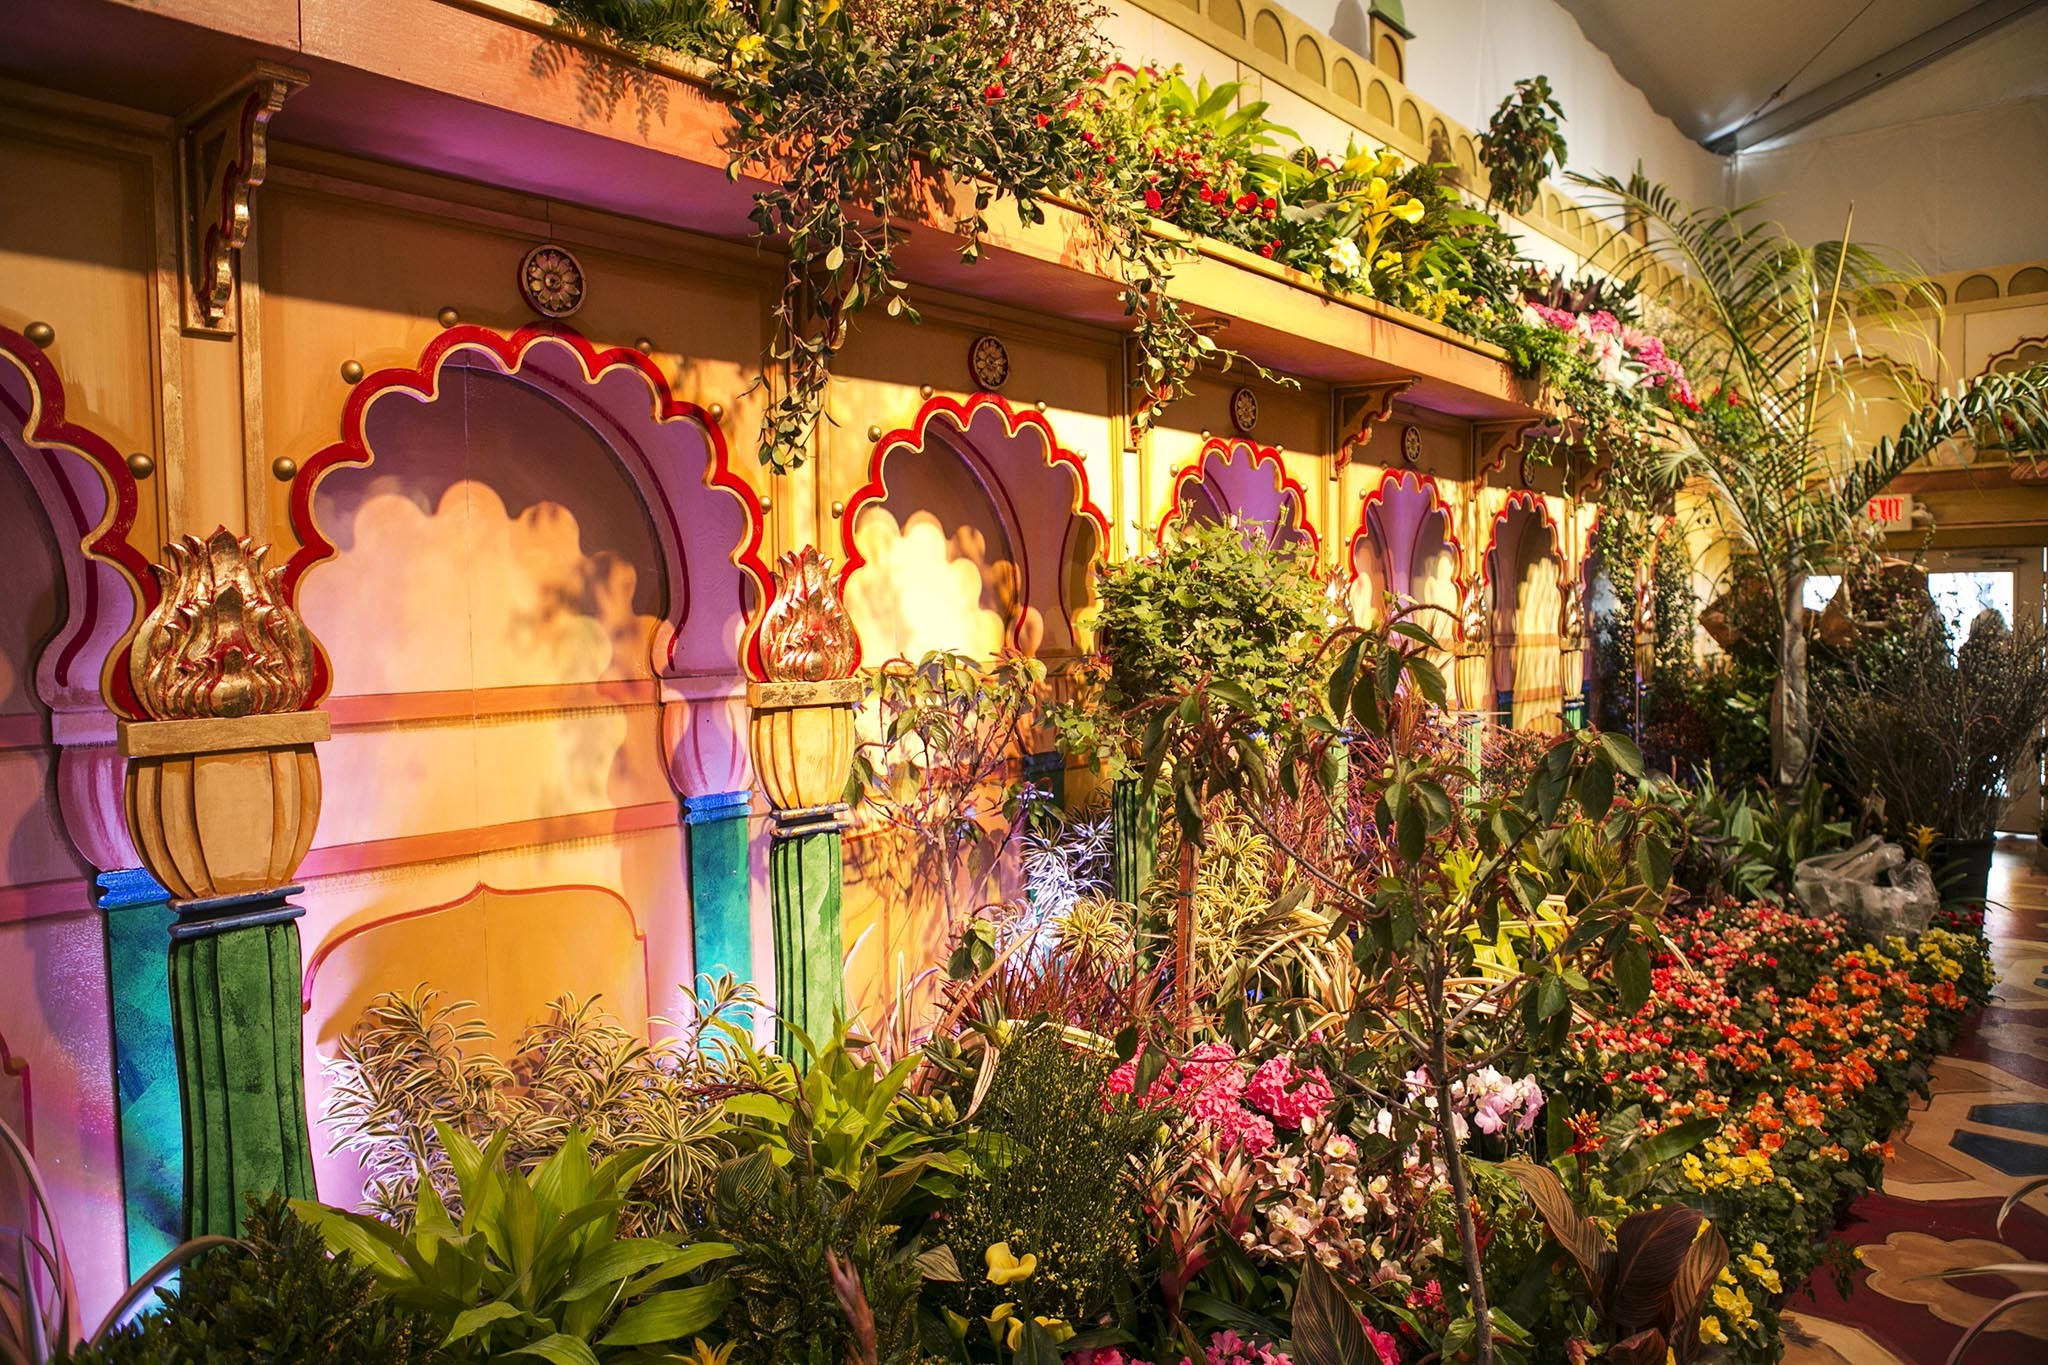 Macy's Flower Show 2013: The Painted Garden